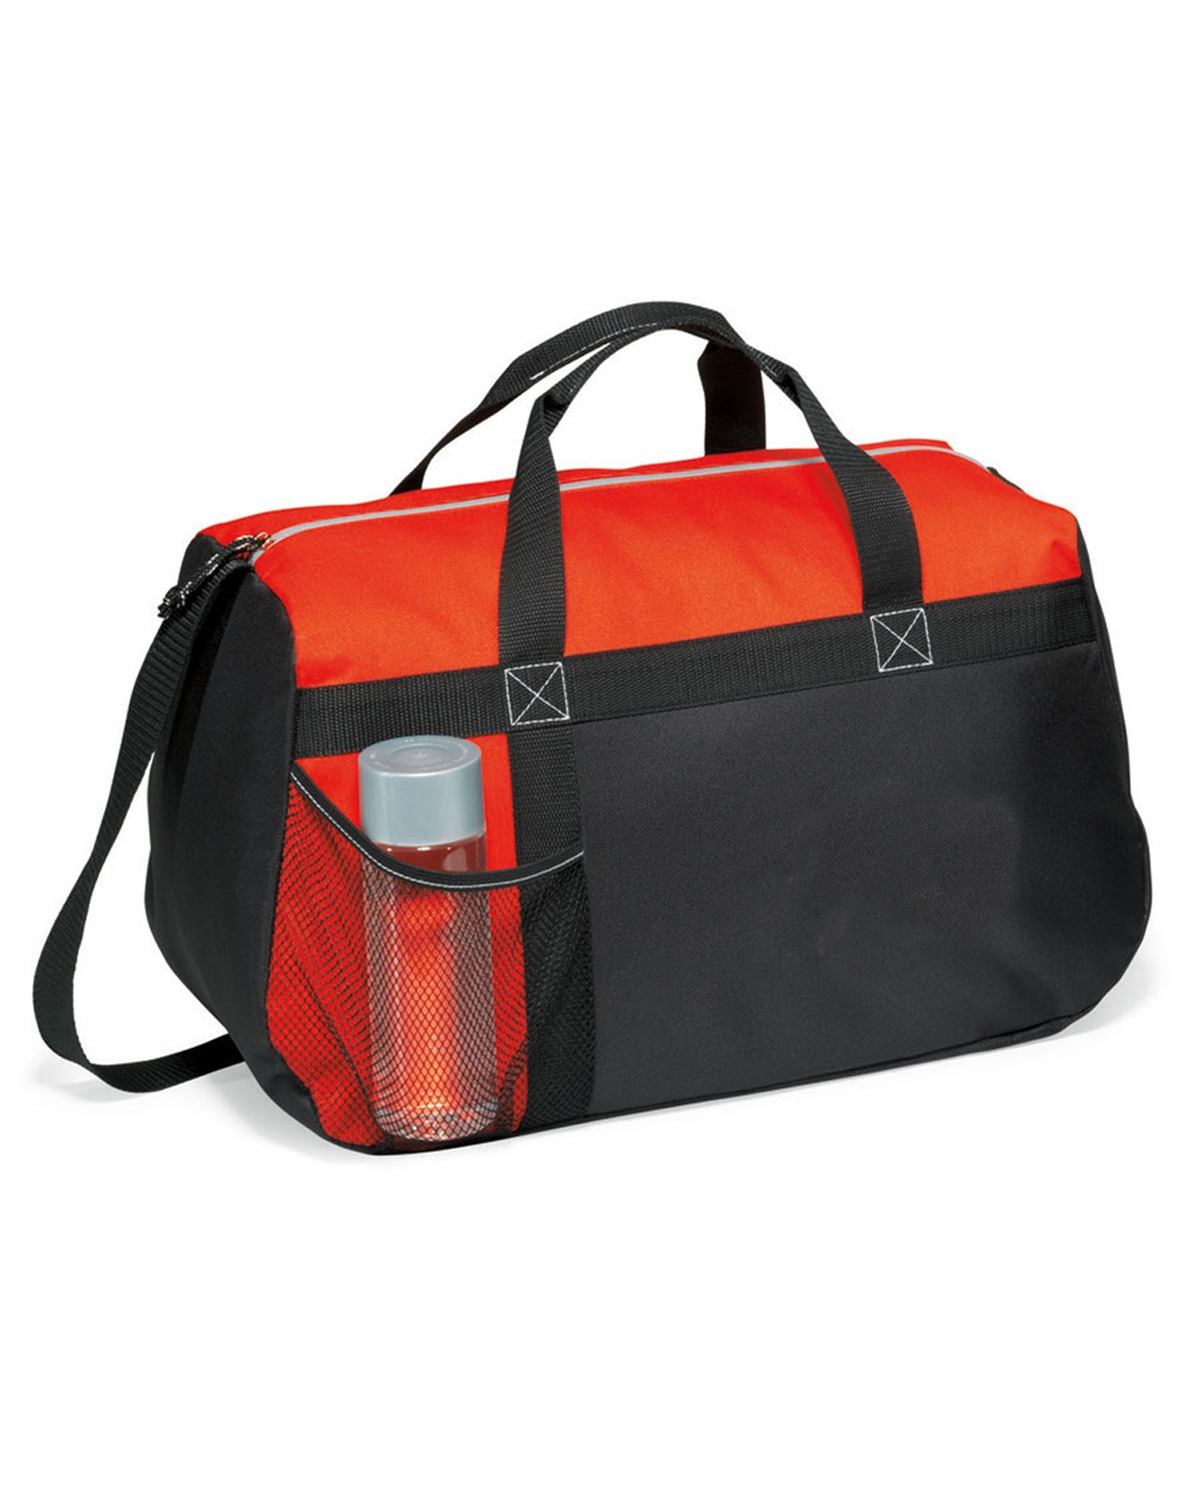 Gemline GL7001 - Sequel Sport Bag